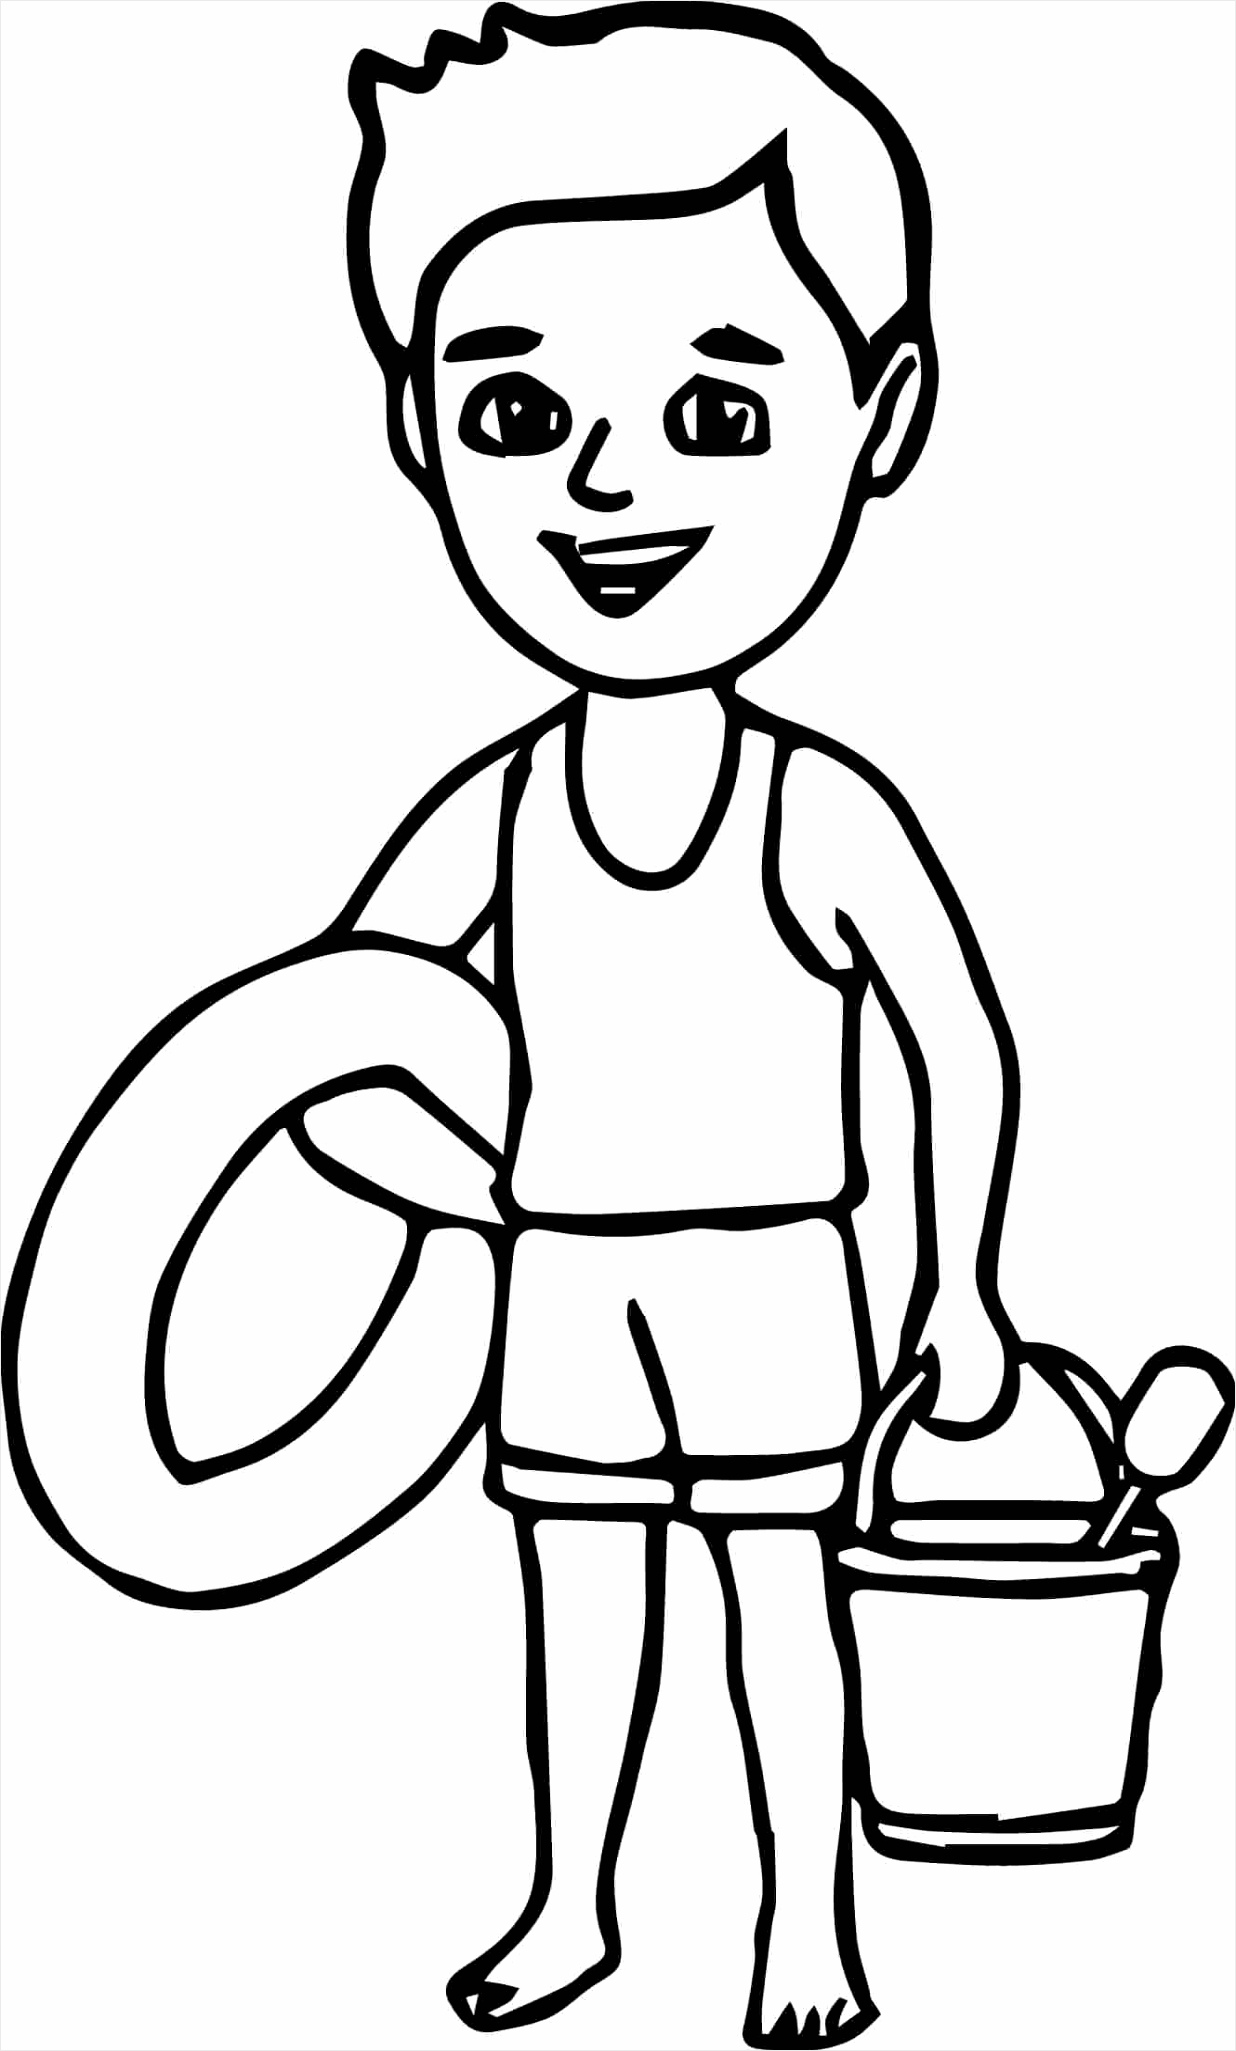 coloring pages online printable unique 685 coloring page for boy auawd